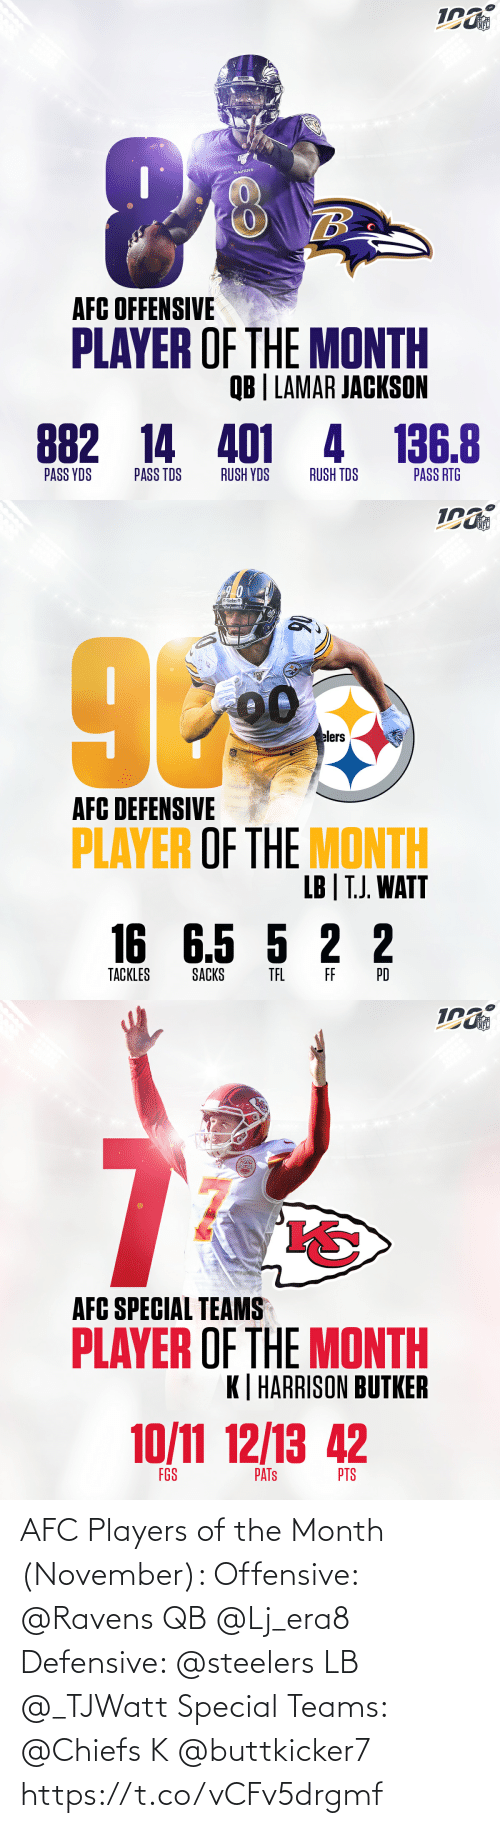 lamar: NFL  RAVENS  AFC OFFENSIVE  PLAYER OF THE MONTH  QB | LAMAR JACKSON  882 14 401 4 136.8  PASS YDS  PASS TDS  RUSH YDS  RUSH TDS  PASS RTG   NFL  elers  AFC DEFENSIVE  PLAYER OF THE MONTH  LB | T.J. WATT  16 6.5 5 2 2  TACKLES  SACKS  TEL  FF  PD   NFL  AFC SPECIAL TEAMS  PLAYER OF THE MONTH  K| HARRISON BUTKER  10/11 12/13 42  FGS  PTS  PATS AFC Players of the Month (November):   Offensive: @Ravens QB @Lj_era8  Defensive: @steelers LB @_TJWatt  Special Teams: @Chiefs K @buttkicker7 https://t.co/vCFv5drgmf